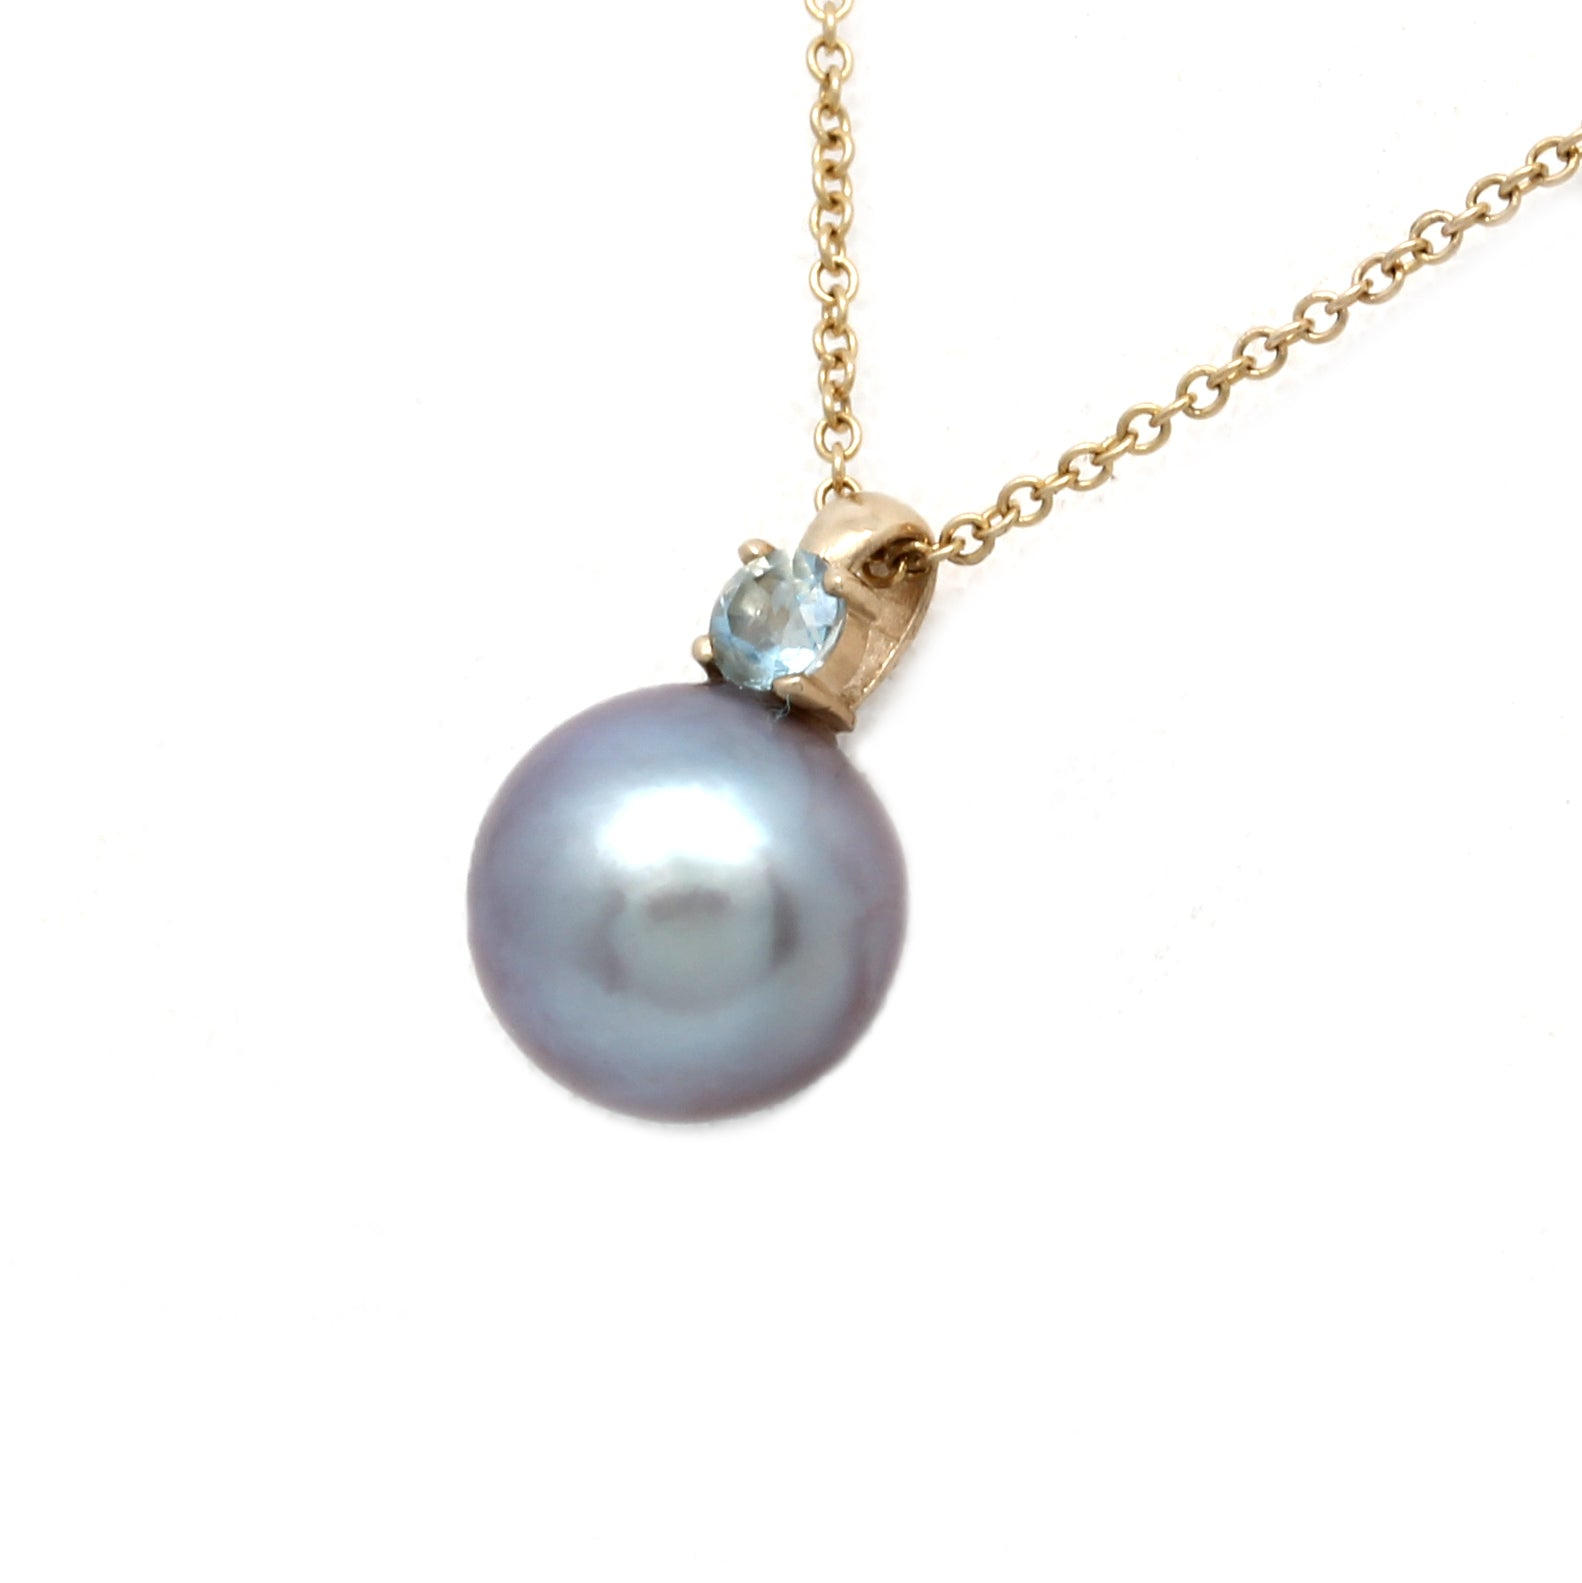 14K Yellow Gold Chain with Aquamarine and a Sea of Cortez Pearl